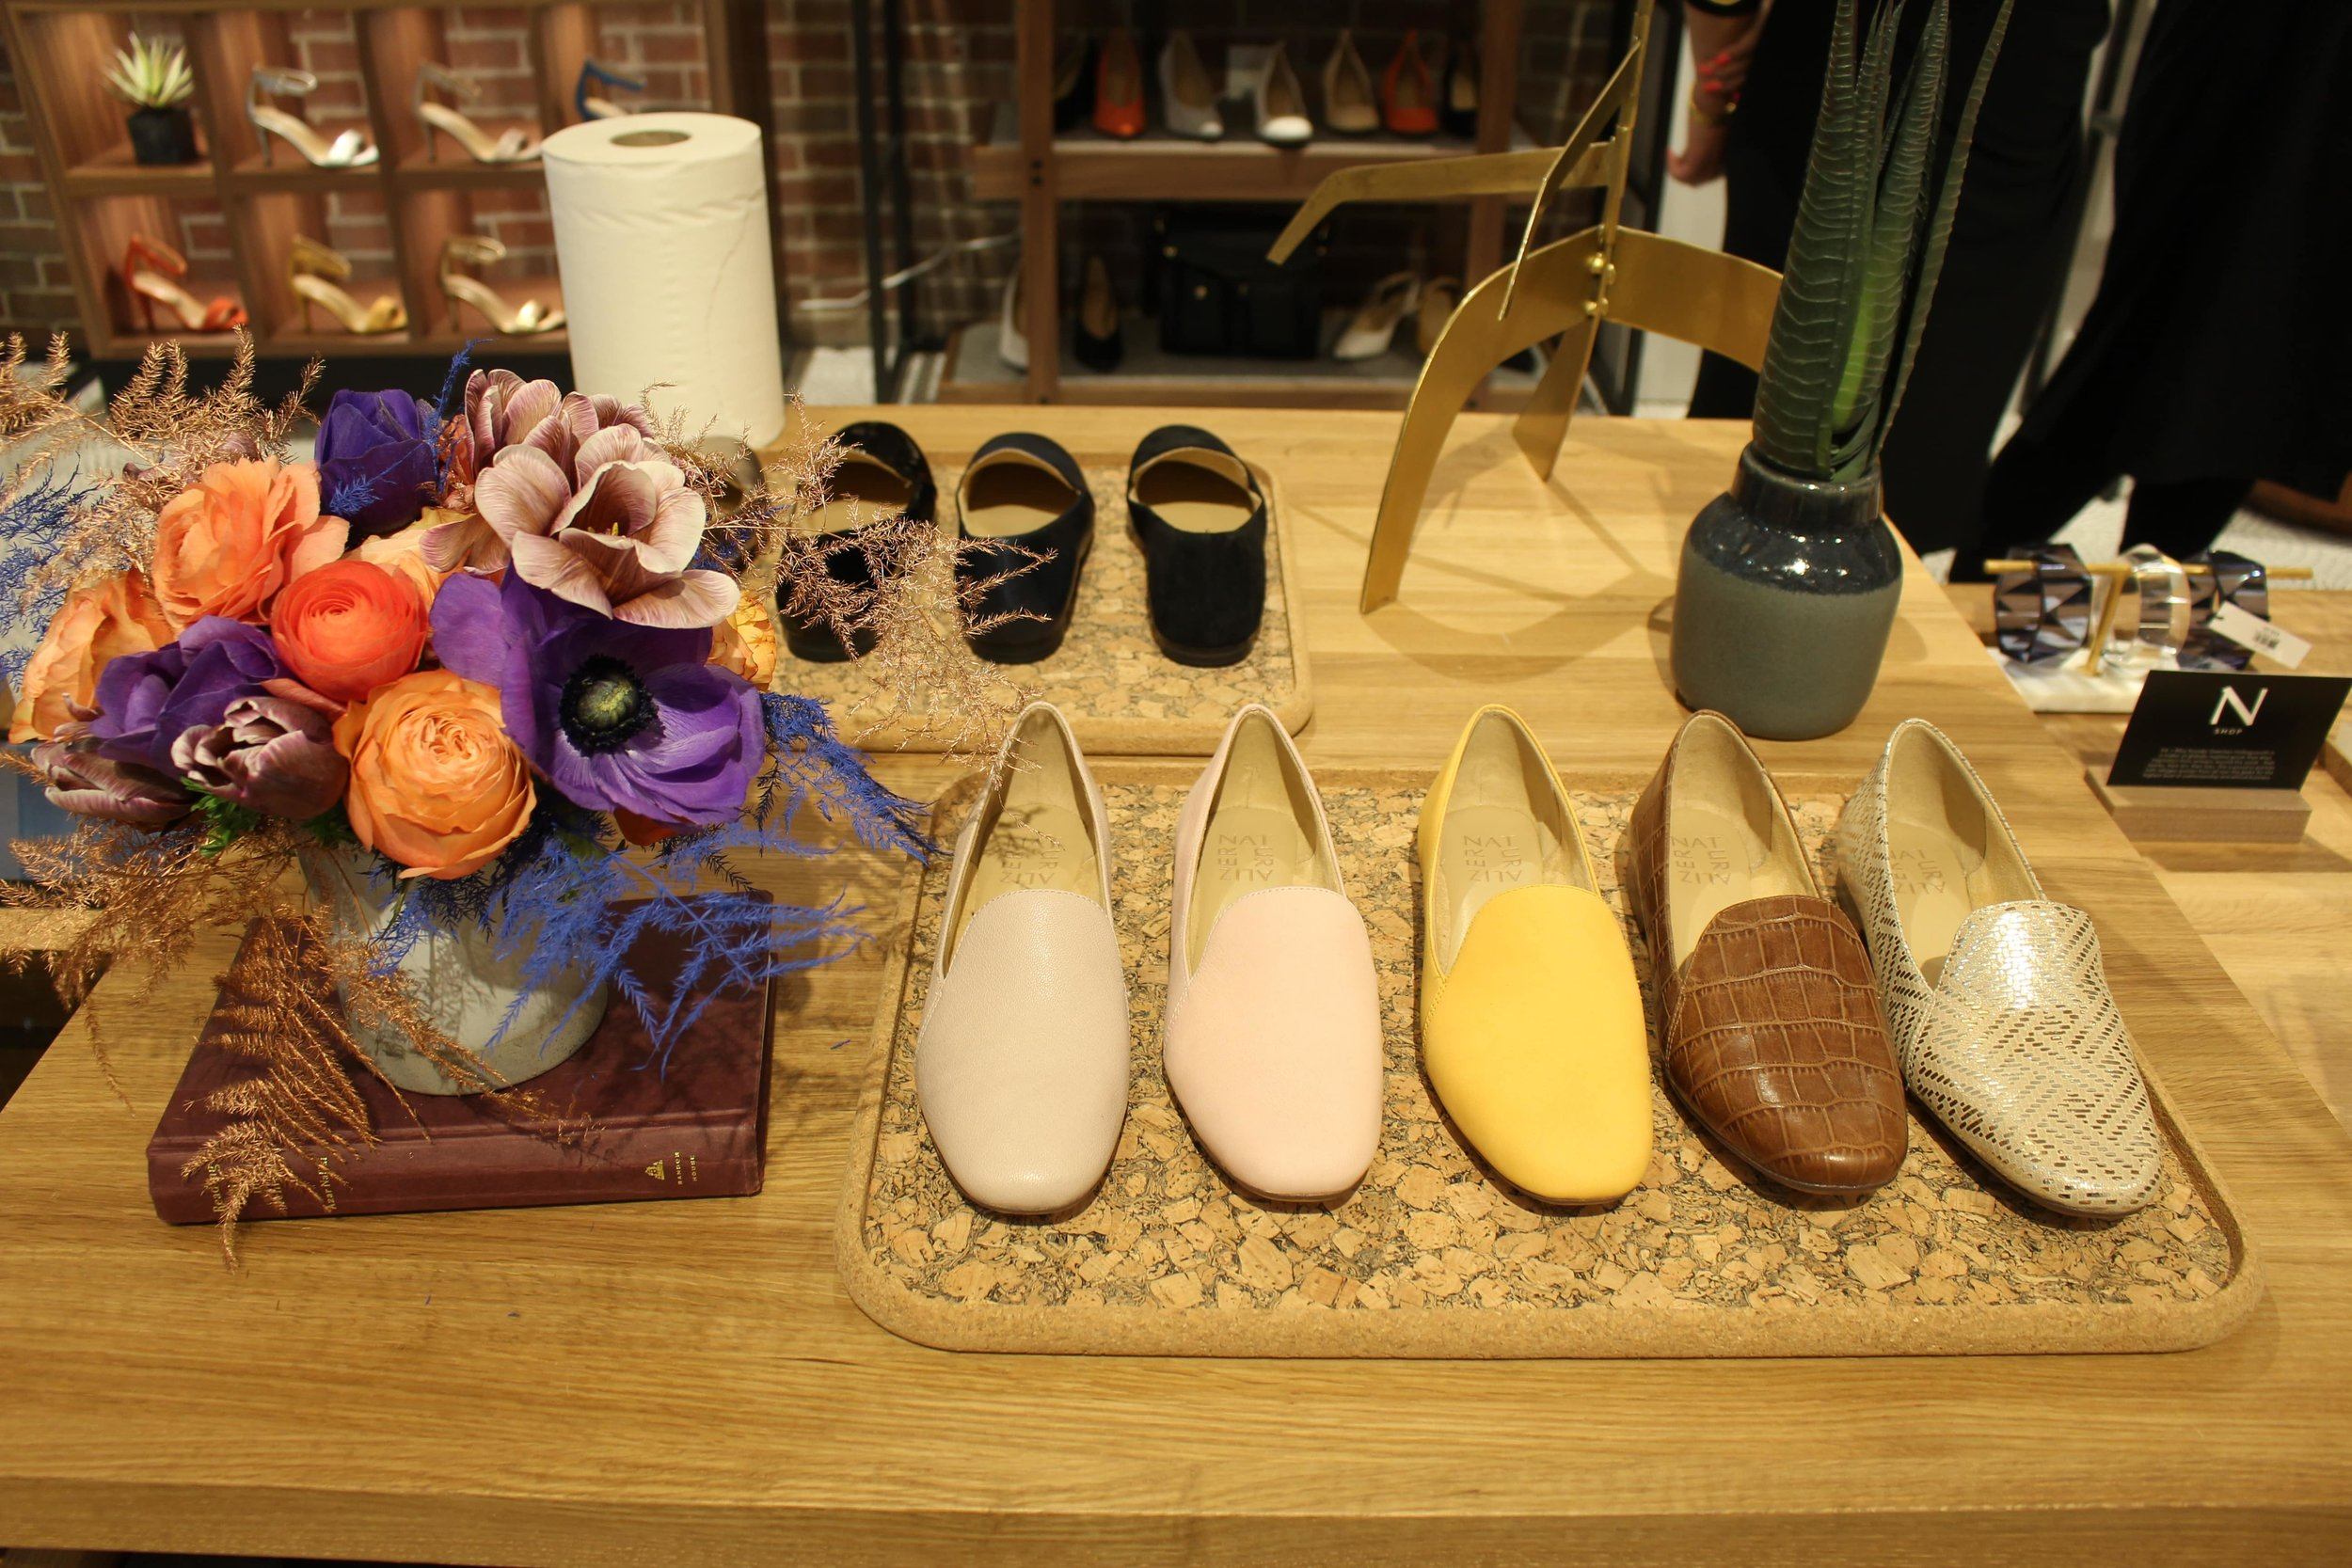 Naturalizer Shoe Display With Arrangement - B Floral